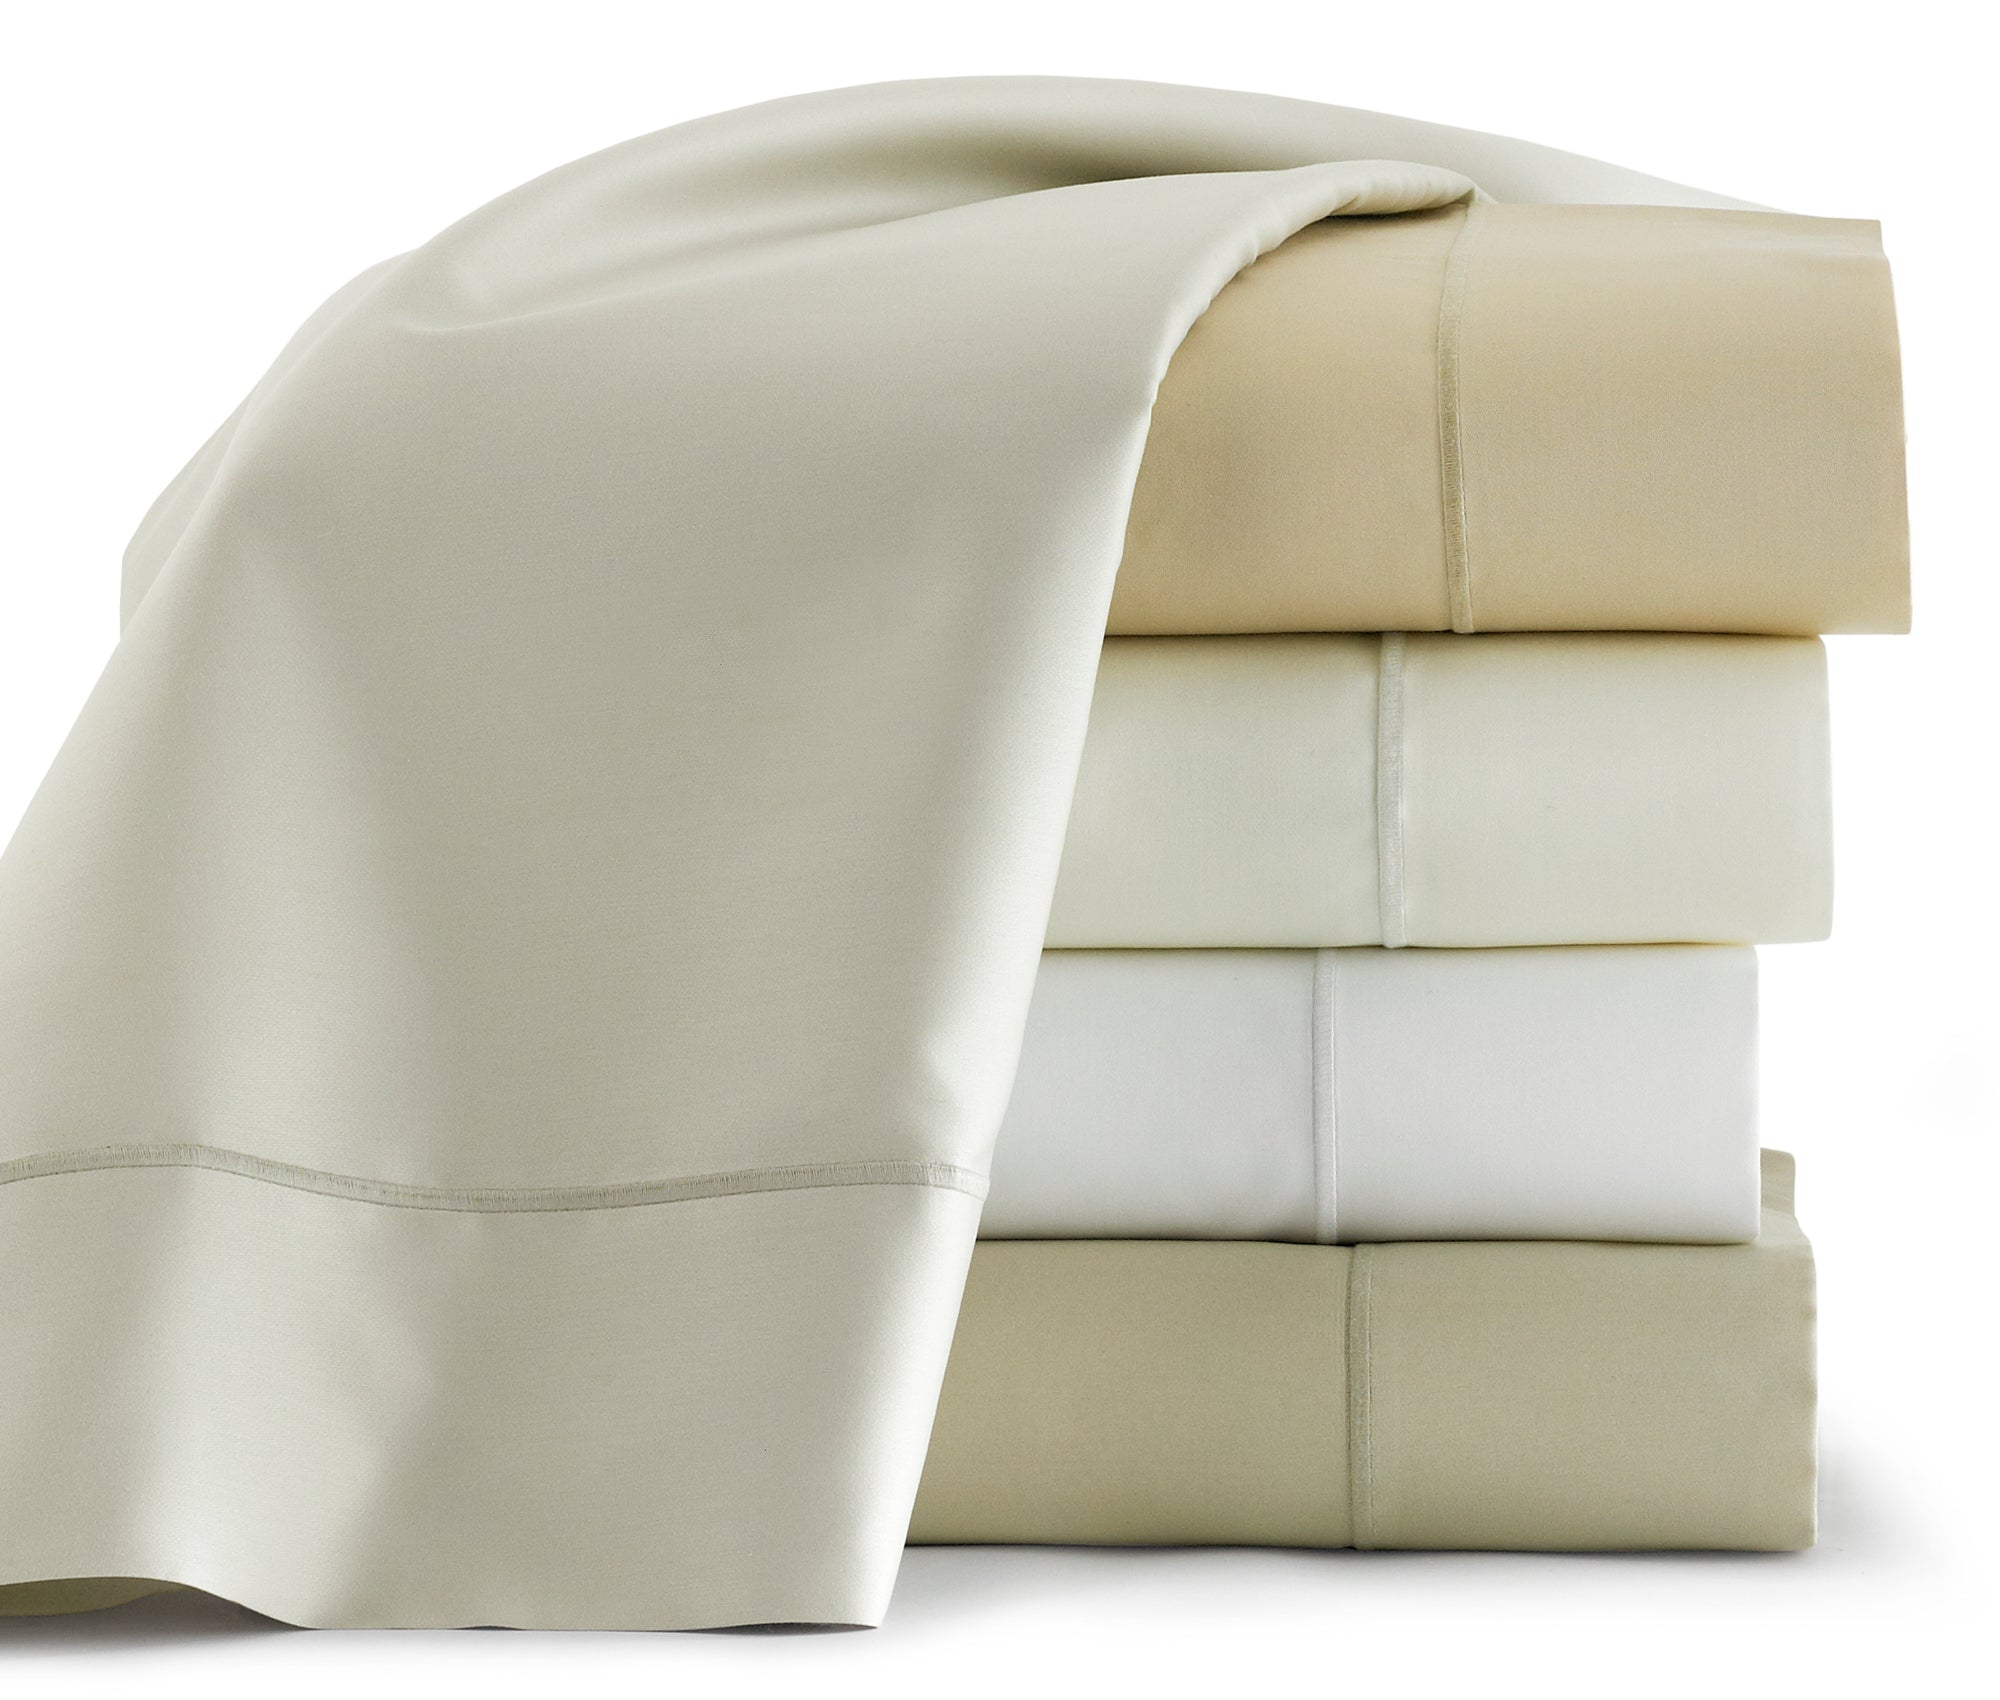 Stack of folded sheets in various neutral colors